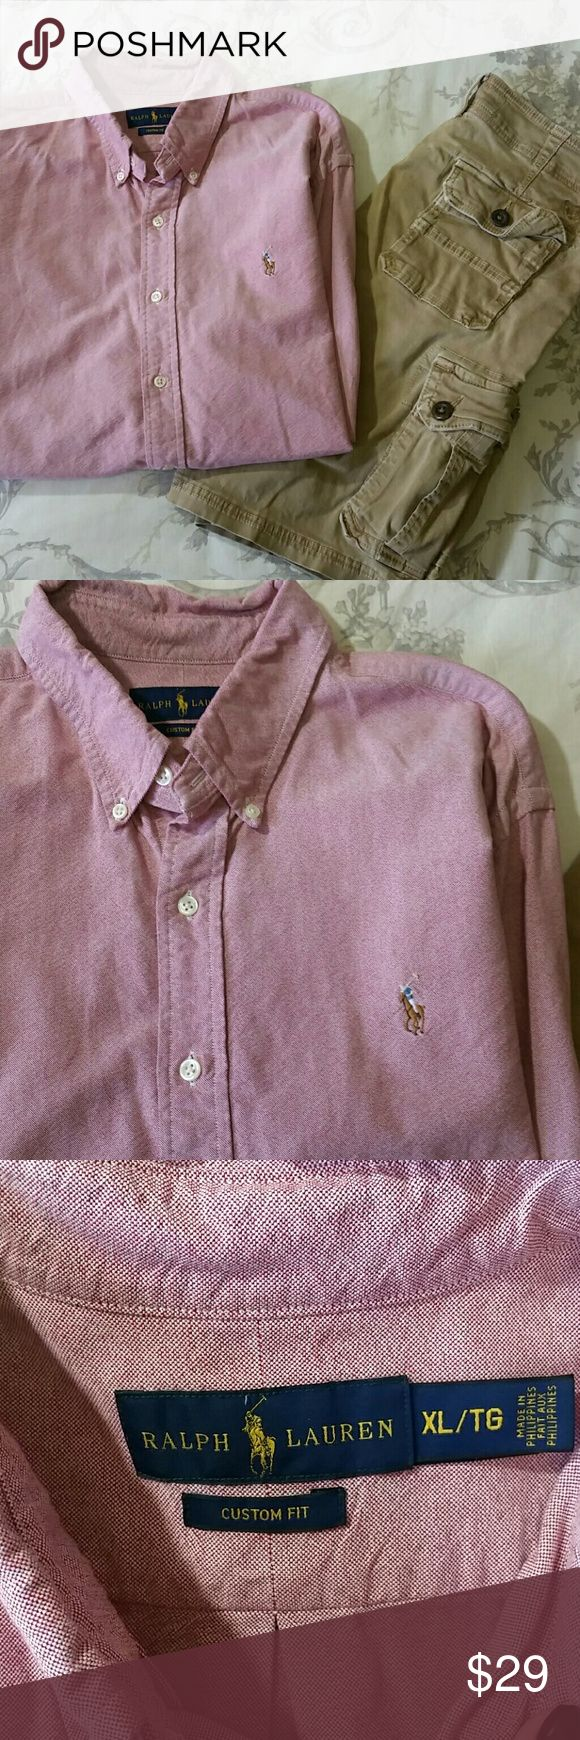 Ralph Lauren custom fit button up shirt xl Ralph Lauren custom fit button up shirt xl. This is a red and white blended shirt, the fabric is thick and perfect for the season. Ralph Lauren Shirts Casual Button Down Shirts